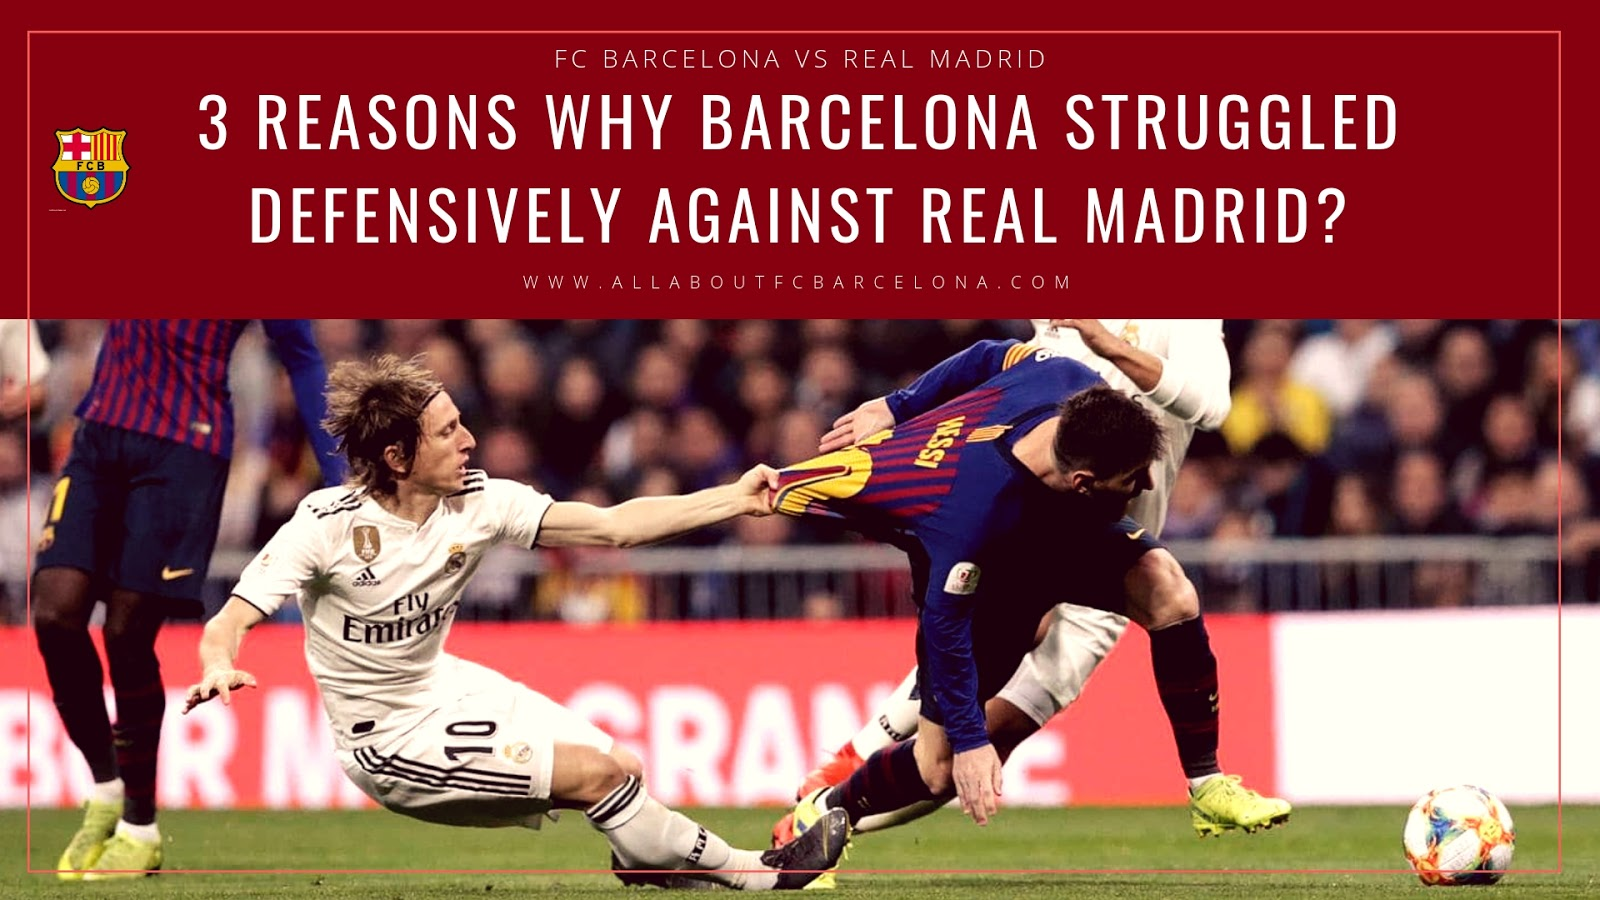 3 Reasons Why Barcelona Struggled Defensively against Real Madrid? #Barca #FCBarcelona